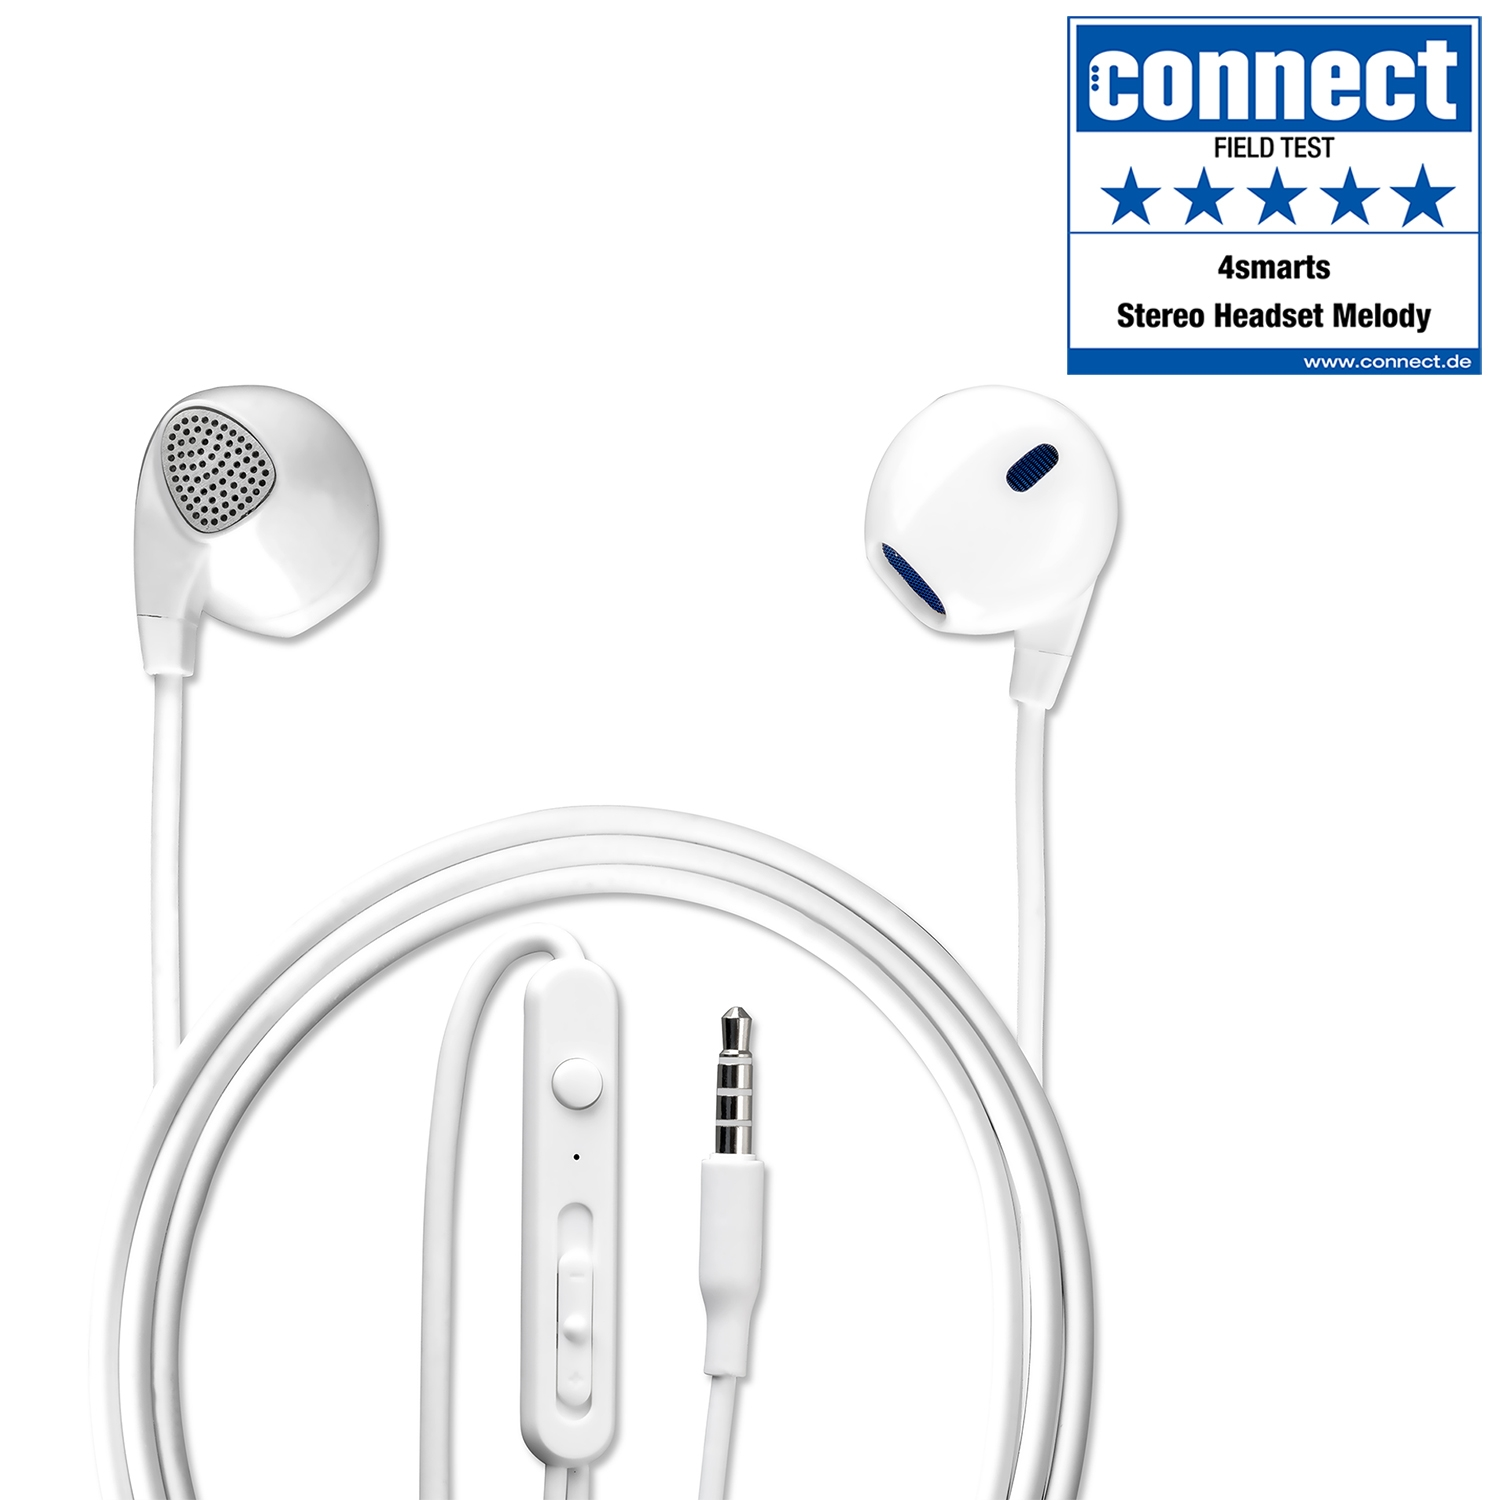 In Ear Stereo Headset Melody 3 5mm Audio Cable 1 2m White